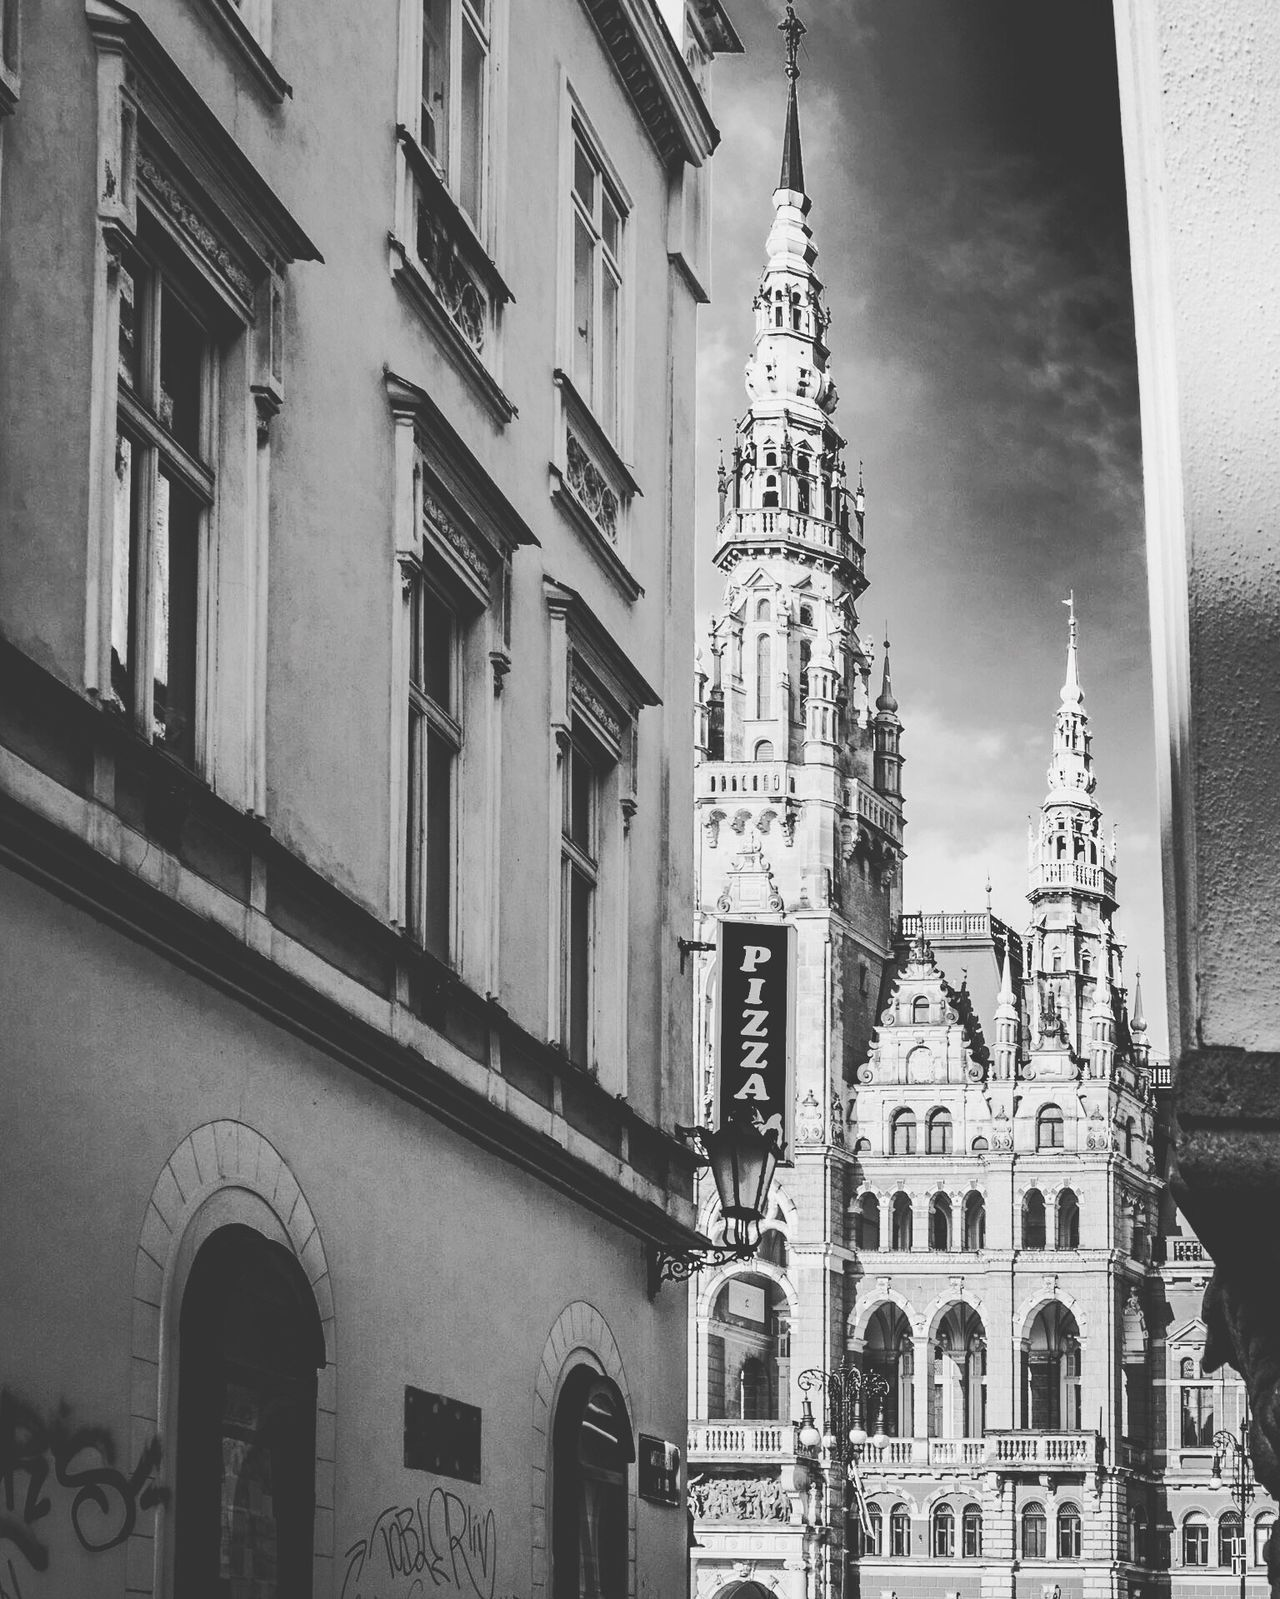 City Architecture Czech Republic Liberec Travel Destinations Streetphotography Olympus Blackandwhite